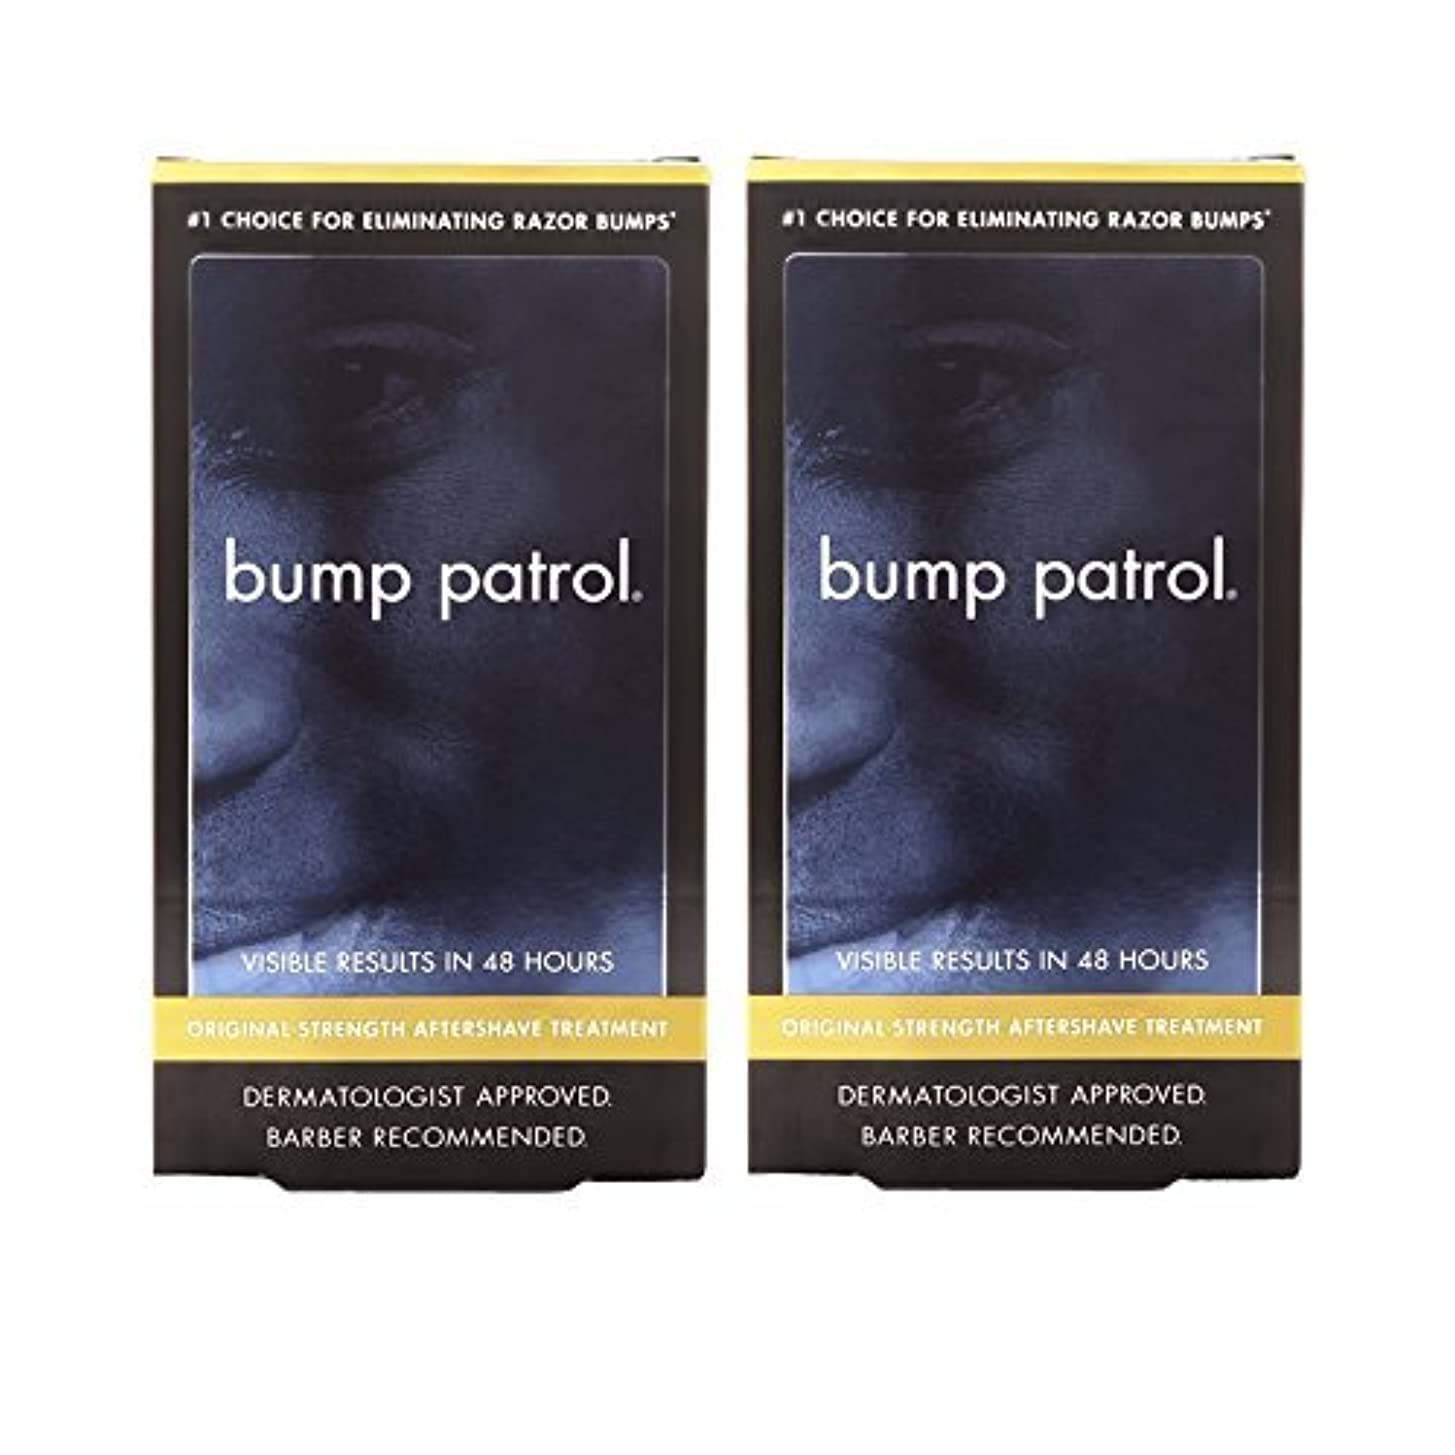 シャトル補正騒Bump Patrol Dermatologist Approved Original Strength Aftershave Treatment (2 oz) 2 Pack [並行輸入品]